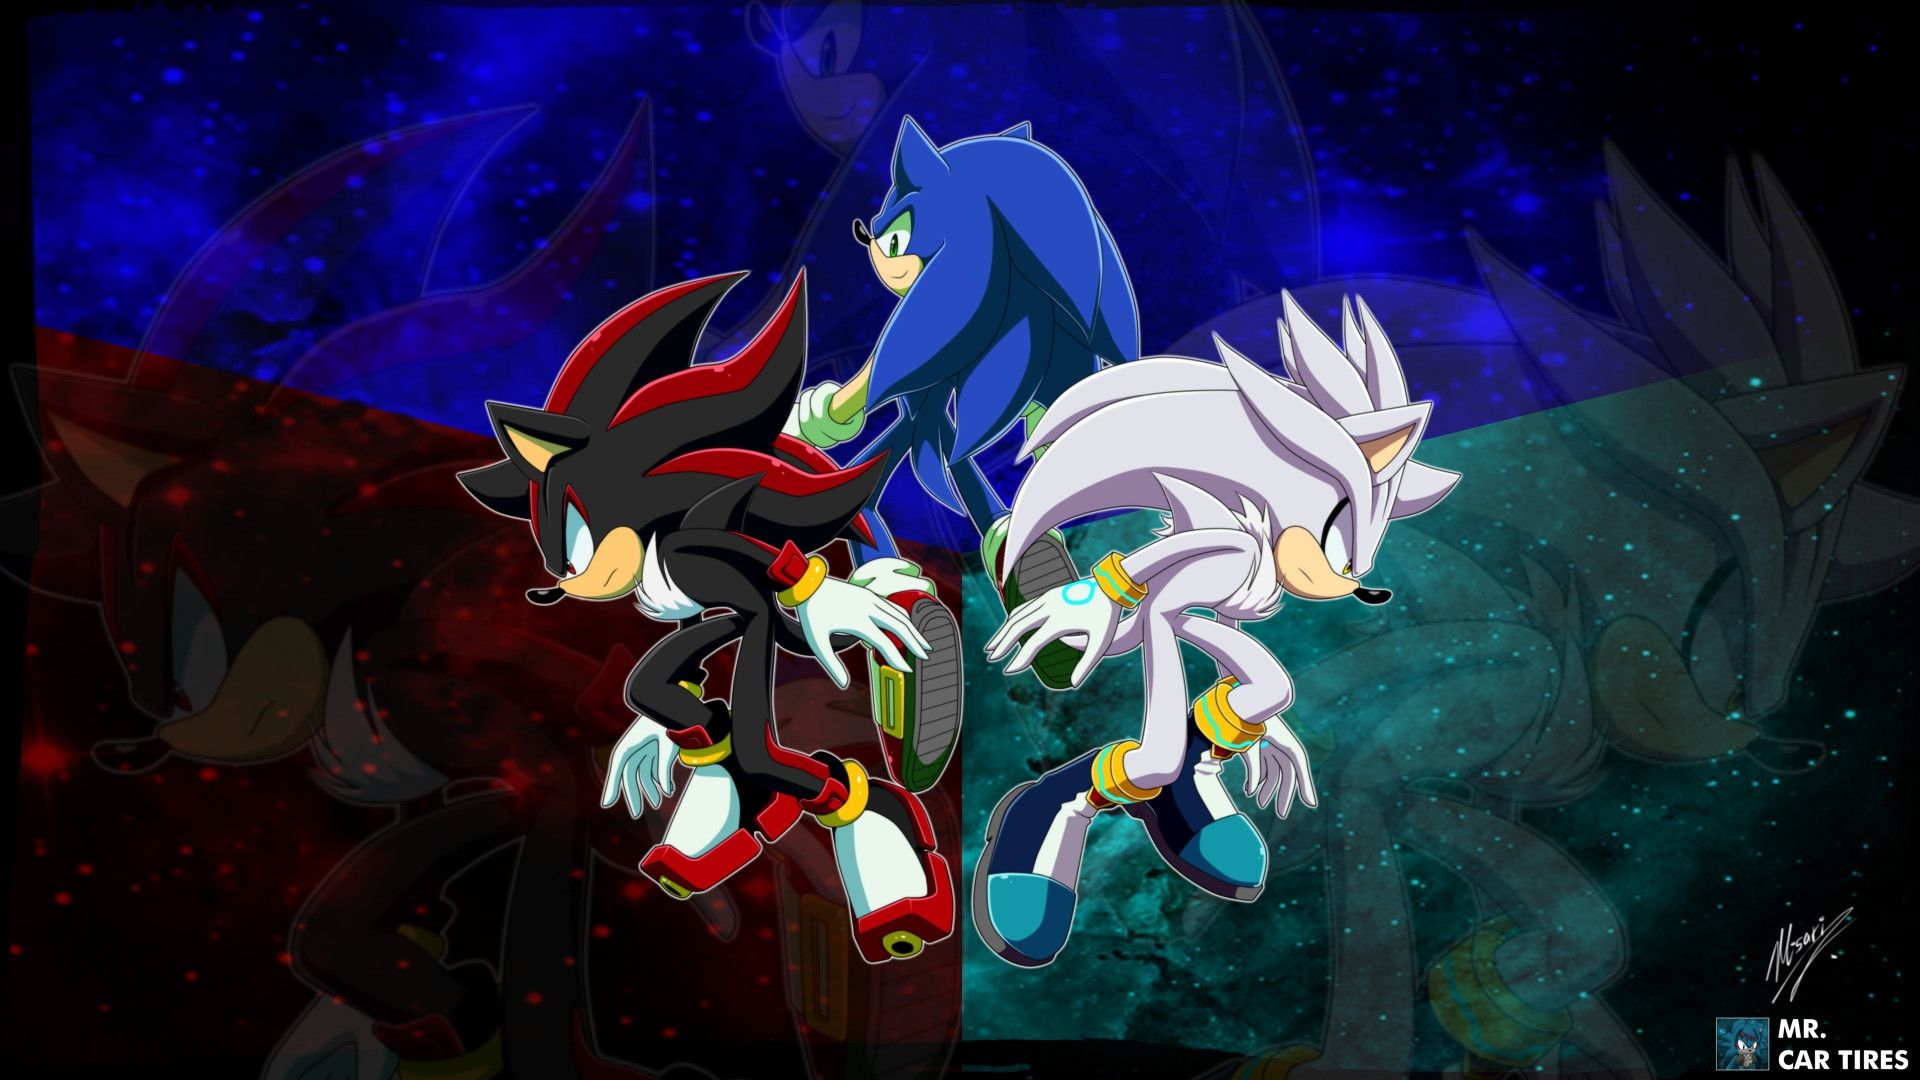 Sonic And Shadow Wallpaper 75 Images Inside Sonic Silver And Shadow Wallpapers Sonic And Shadow Shadow The Hedgehog Hedgehog